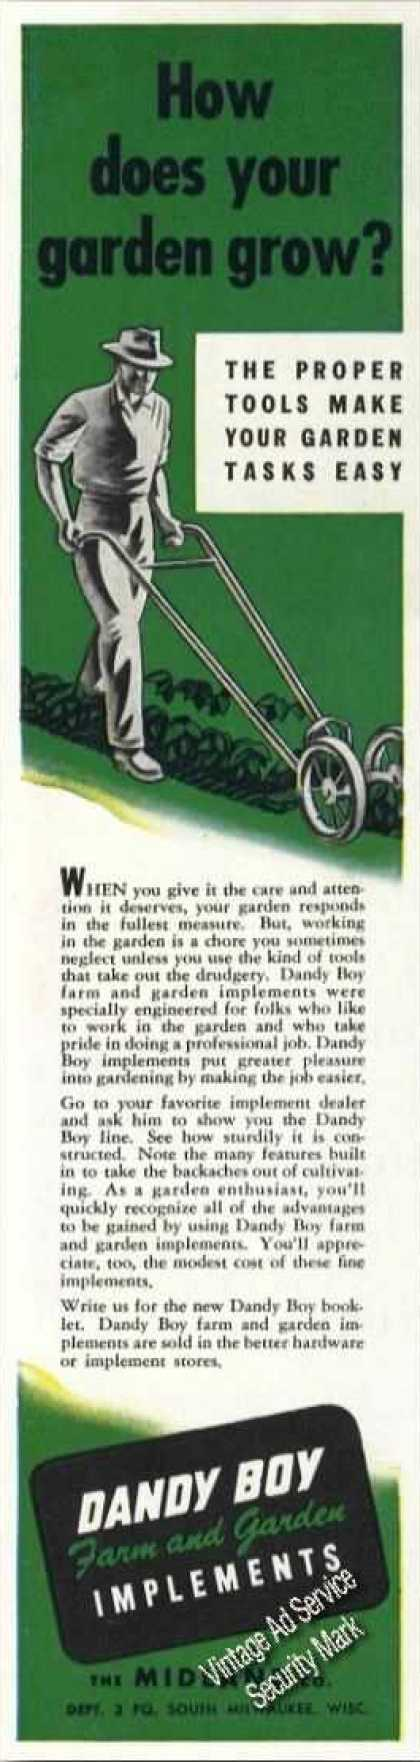 Dandy Boy Farm & Garden Implements (1947)